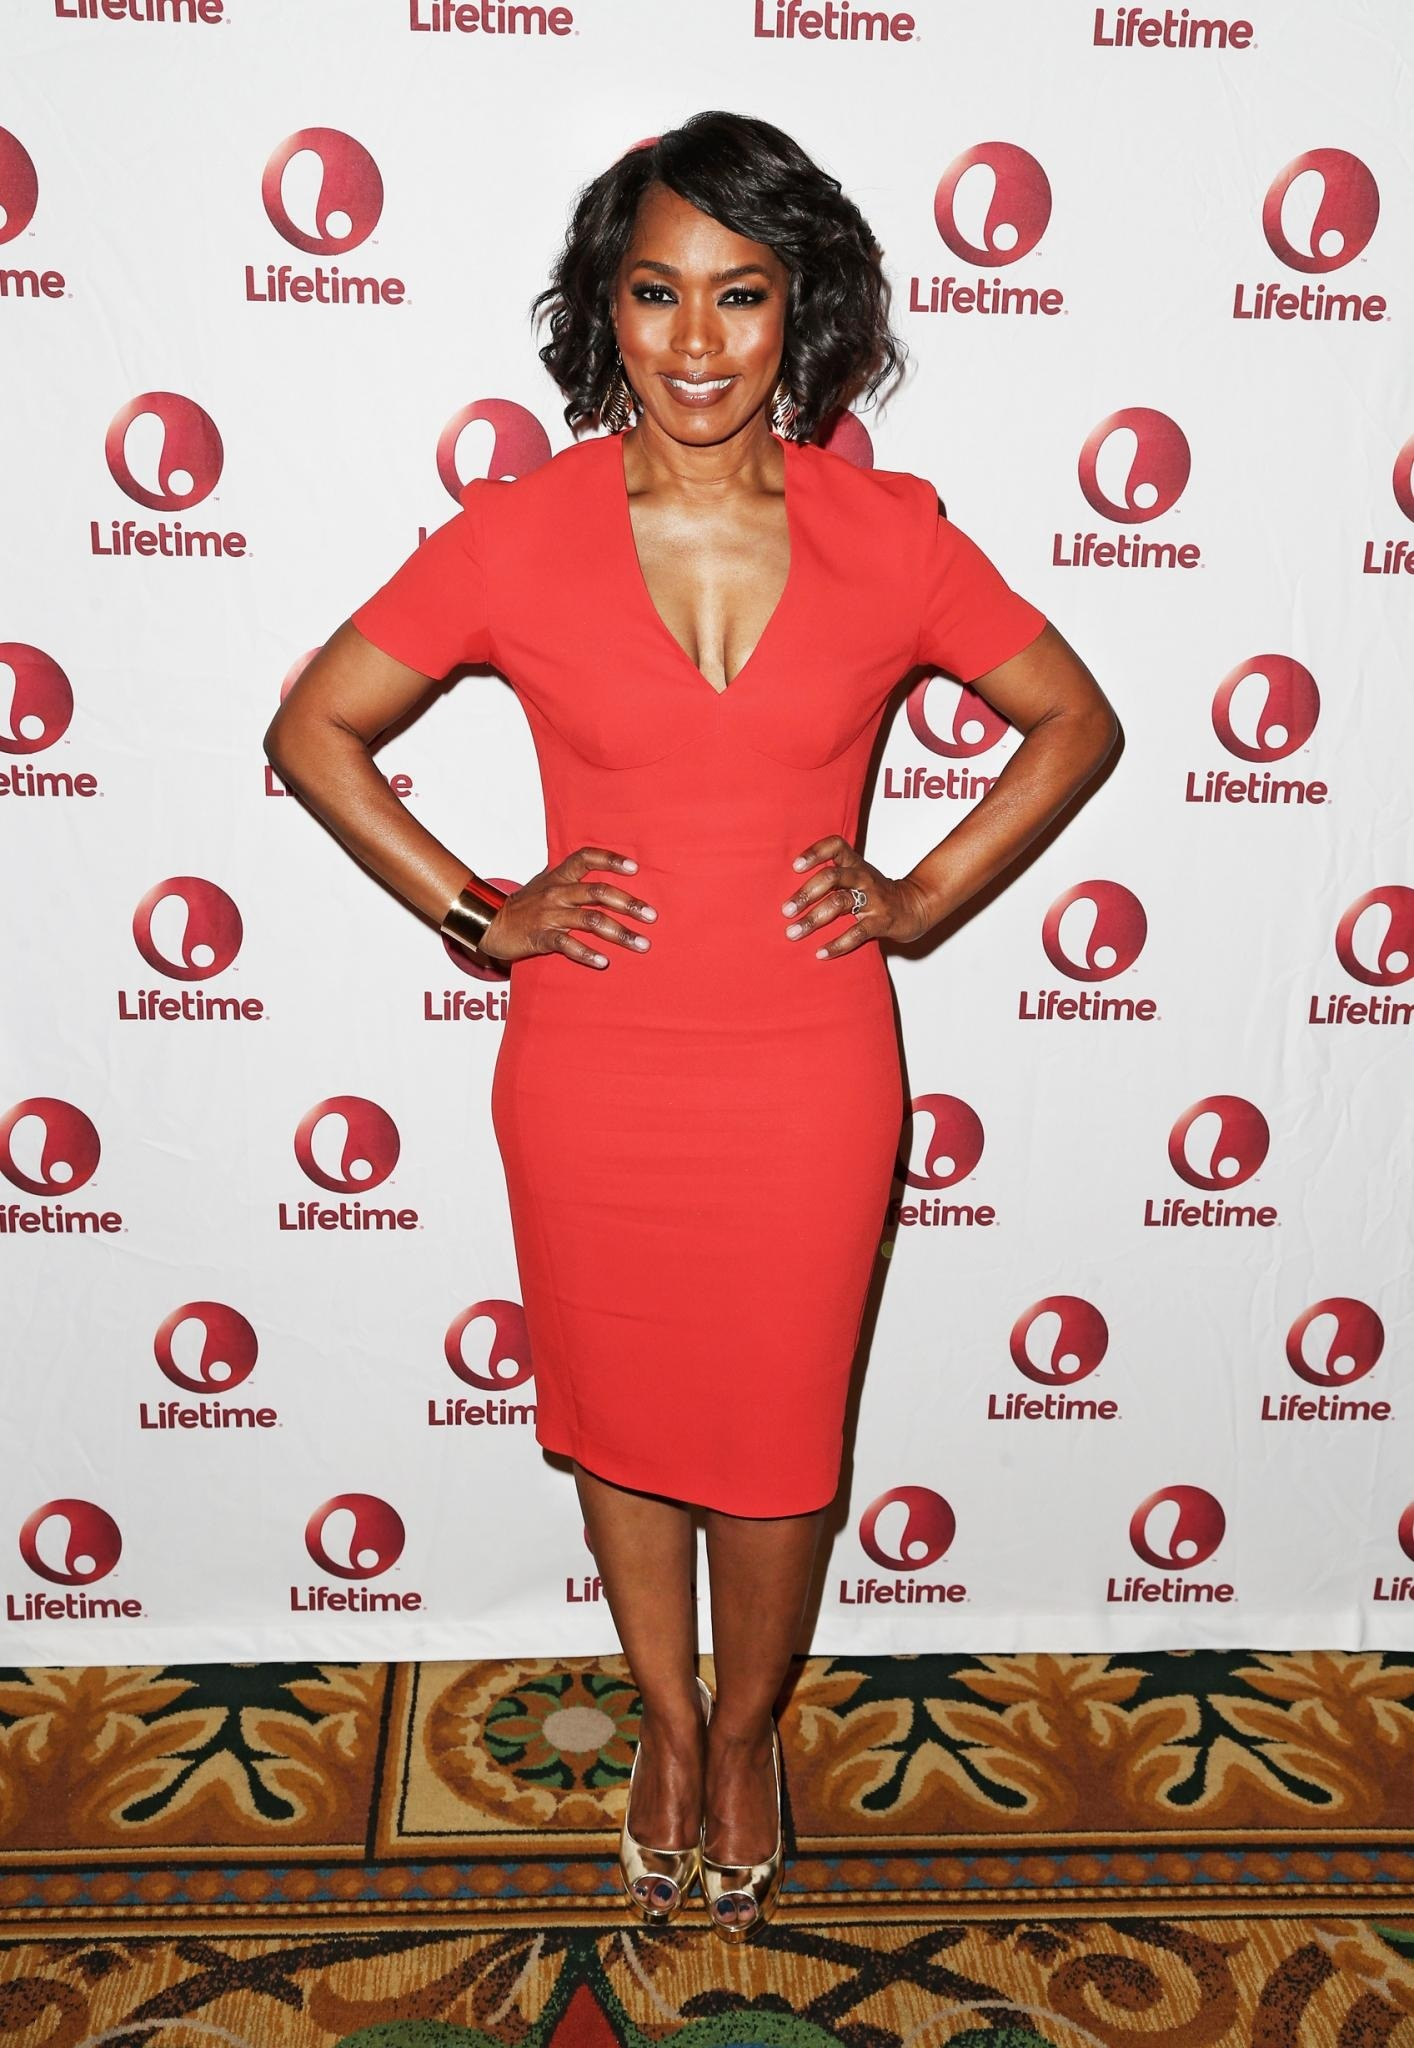 Angela Bassett Attends The Lifetime Network Sponsored Breakfast For Whitney During The Winter Television Critics Association Press Tour At The Langham Hotel In Pasadena California Angela Bassett